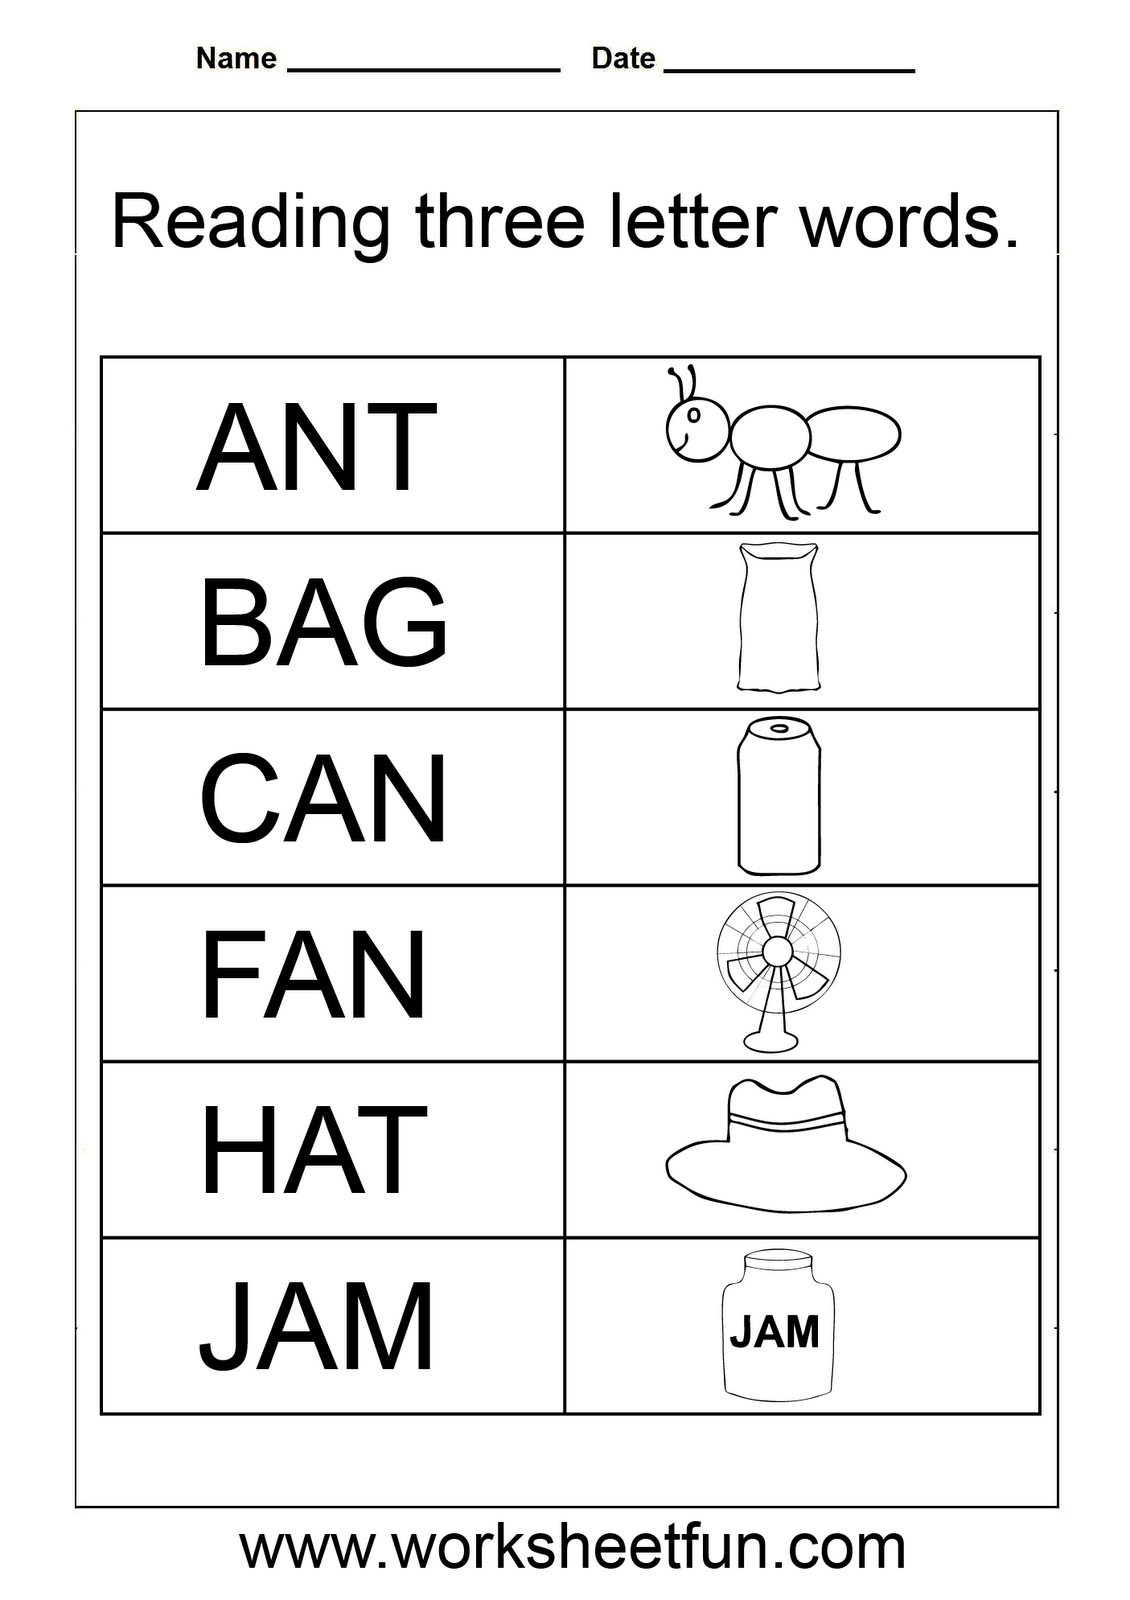 3-Letter Words Worksheets | Spelling Worksheets, Three throughout 3 Letter Worksheets